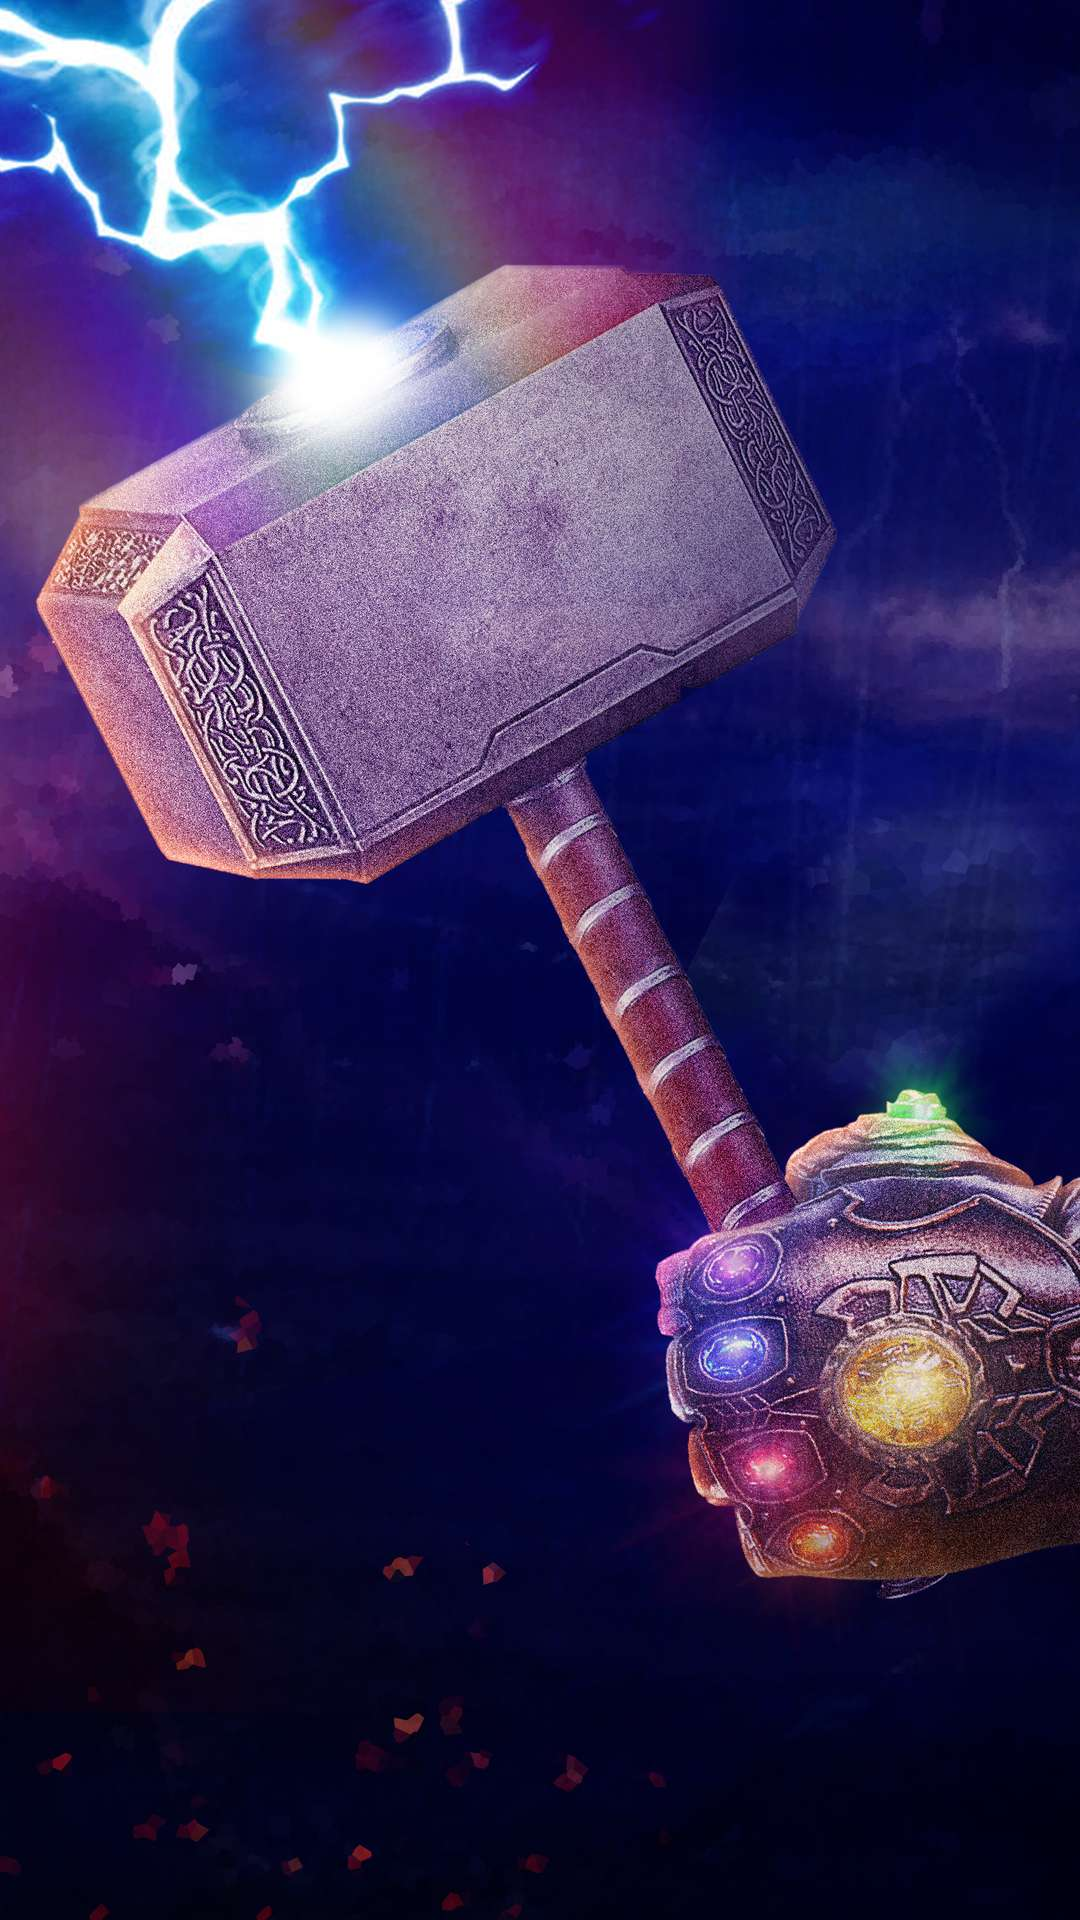 Cute Hristmas Wallpaper Thanos Gauntlet With Thor Hammer Iphone Wallpaper Iphone